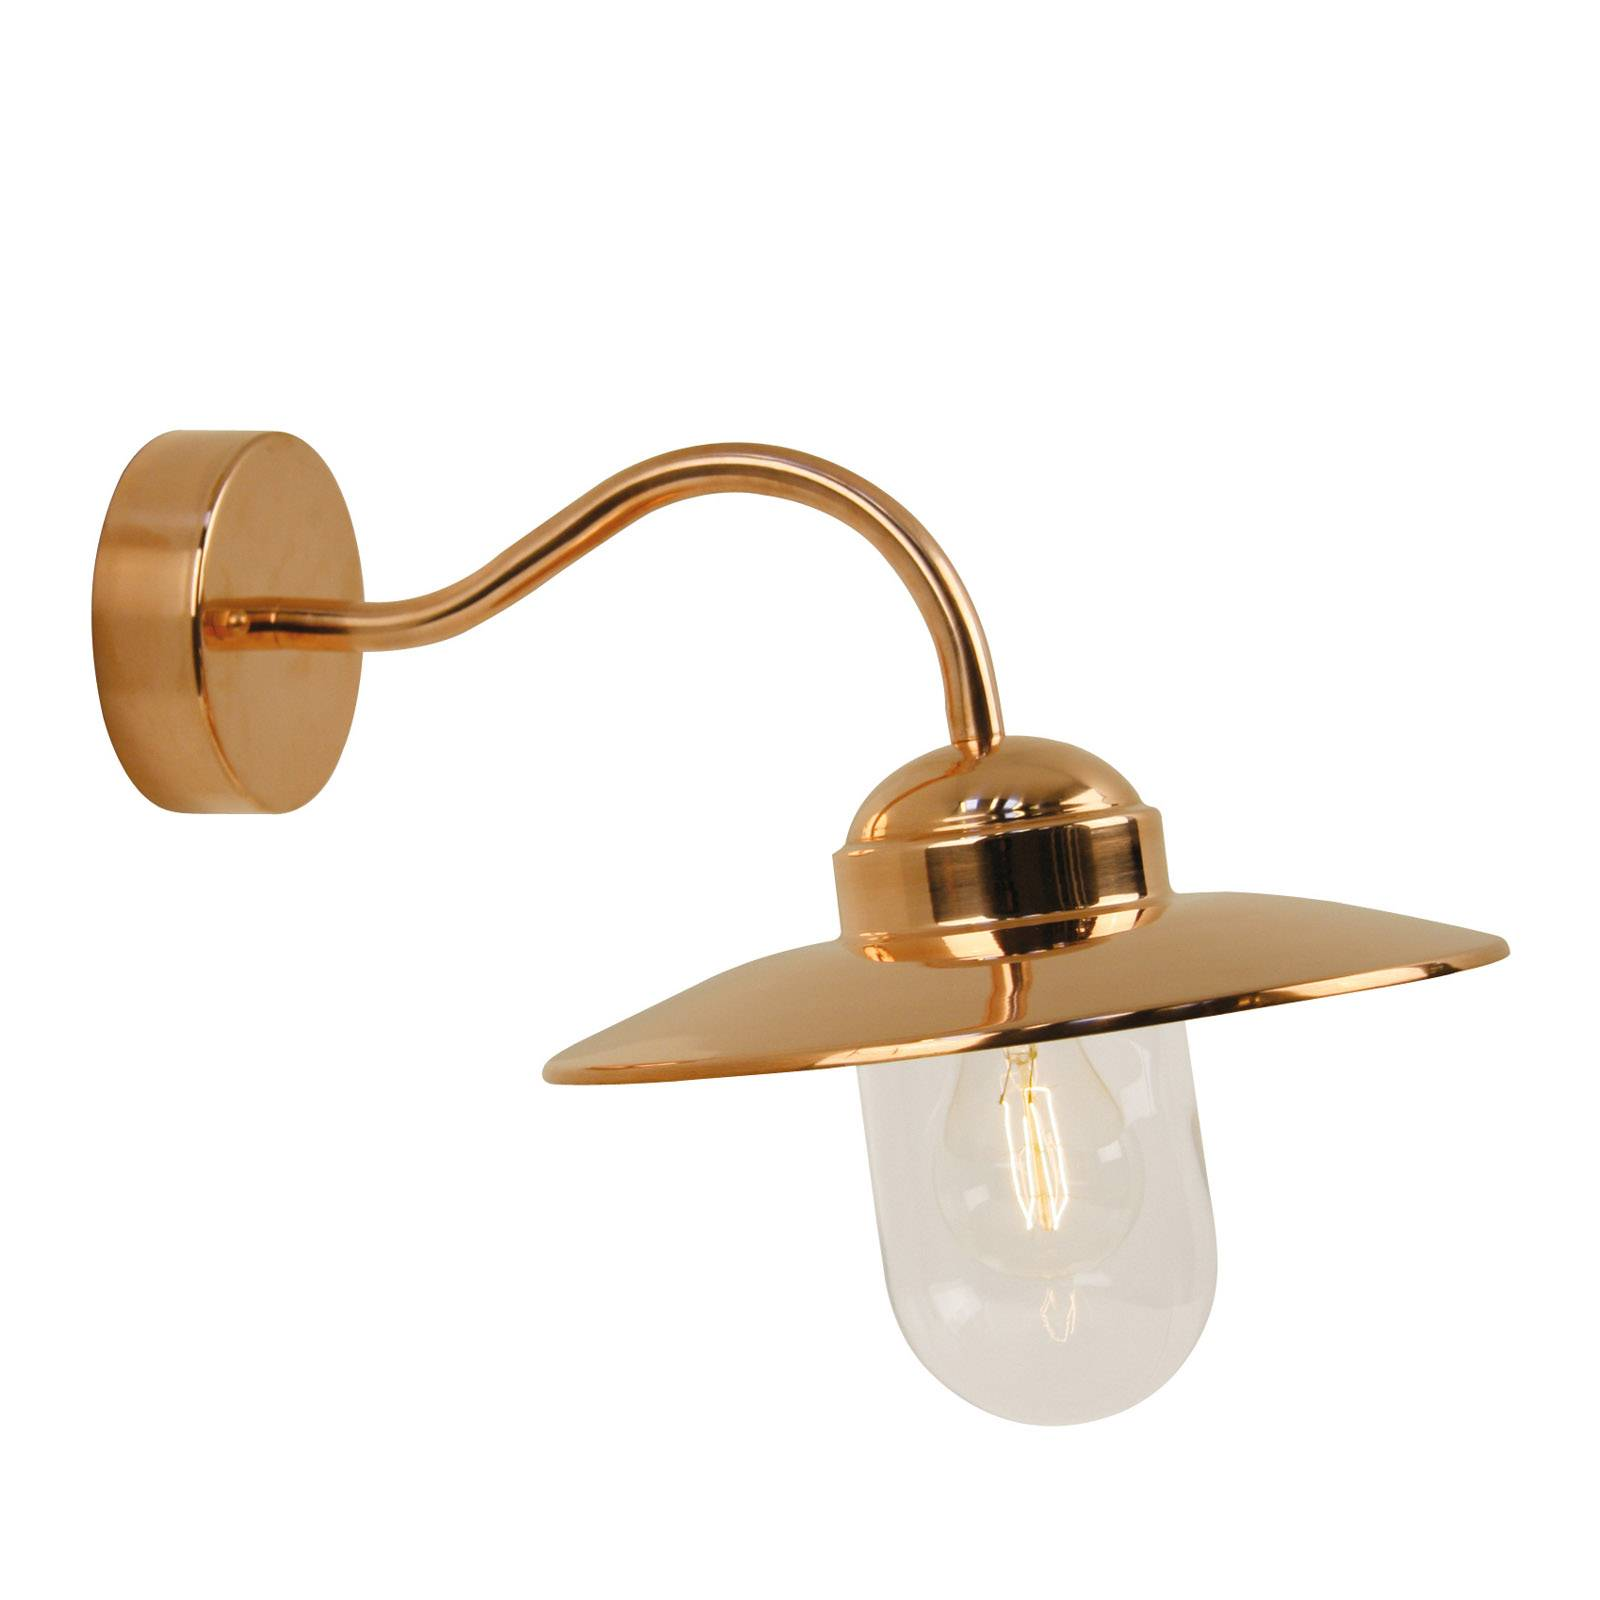 Luxembourg outdoor wall lamp made of copper from Nordlux